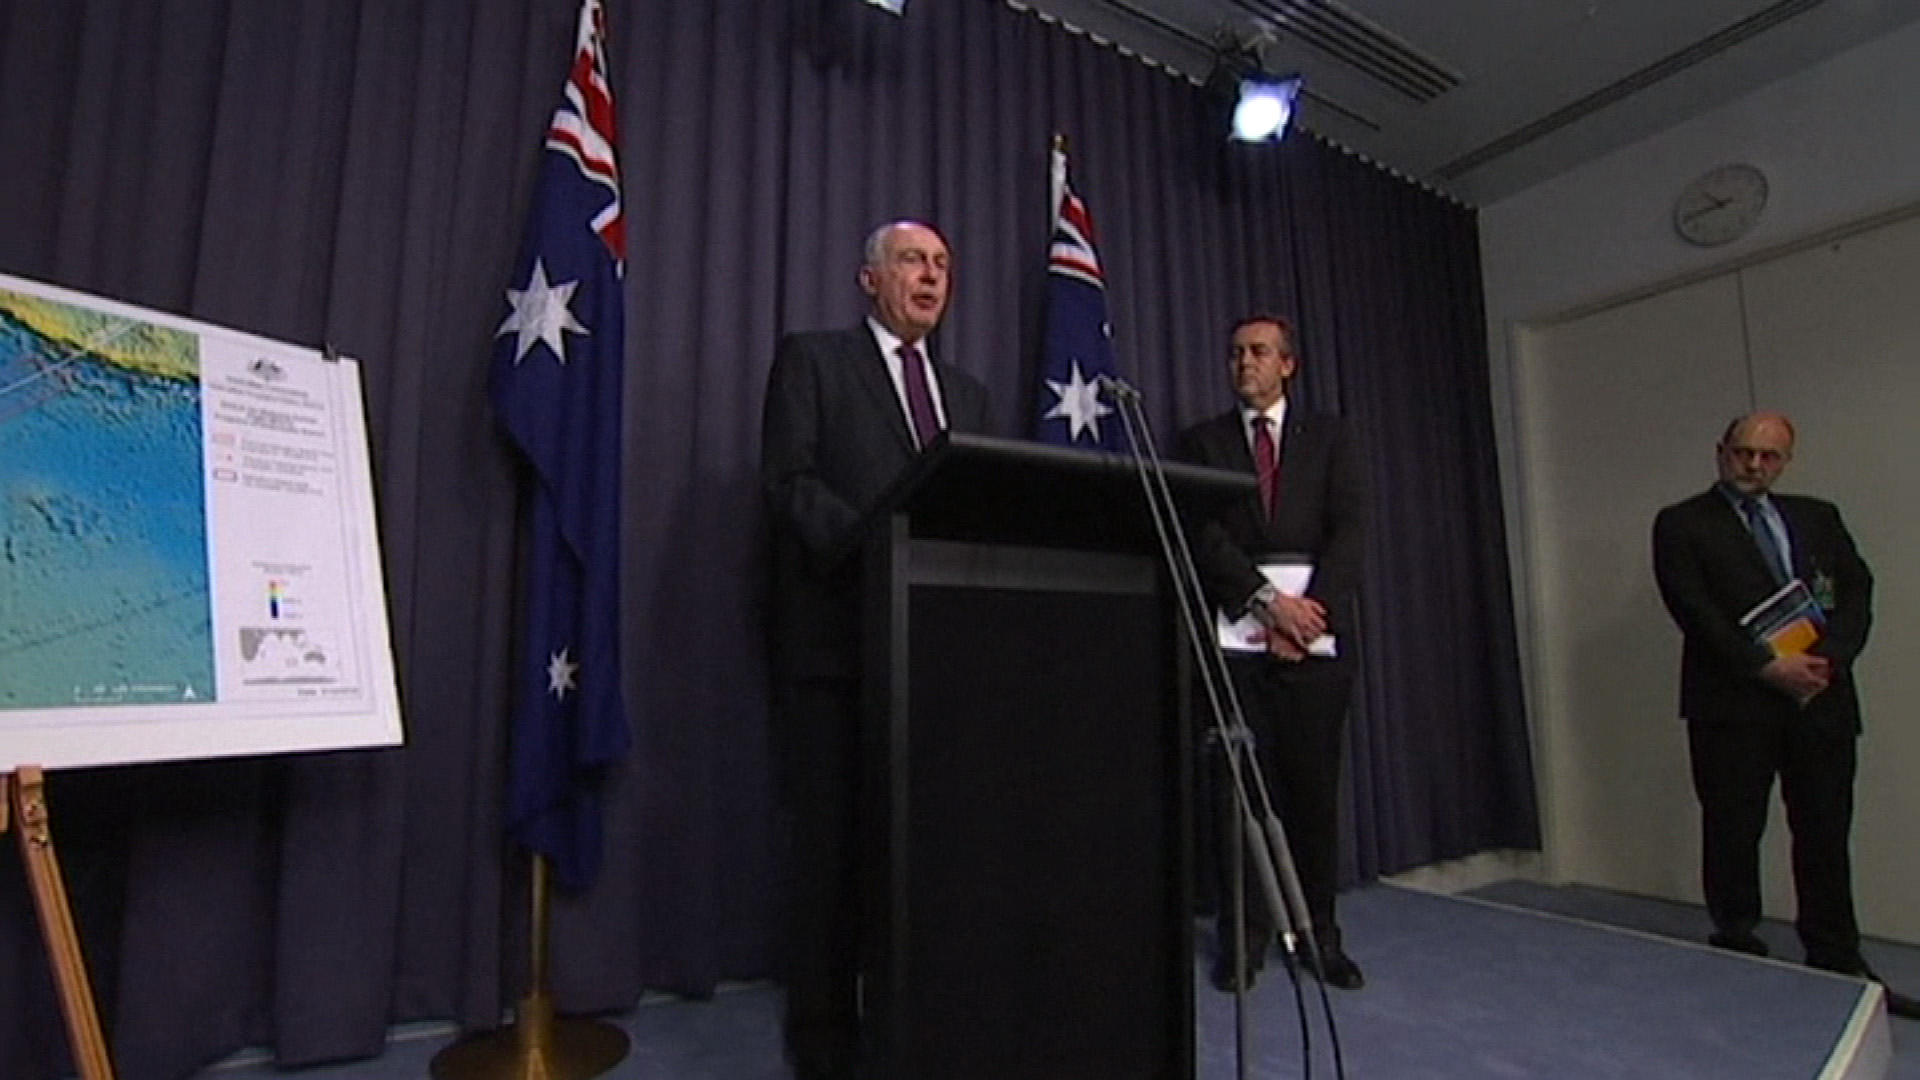 Australia Says MH370 Search Continues in the Right Area